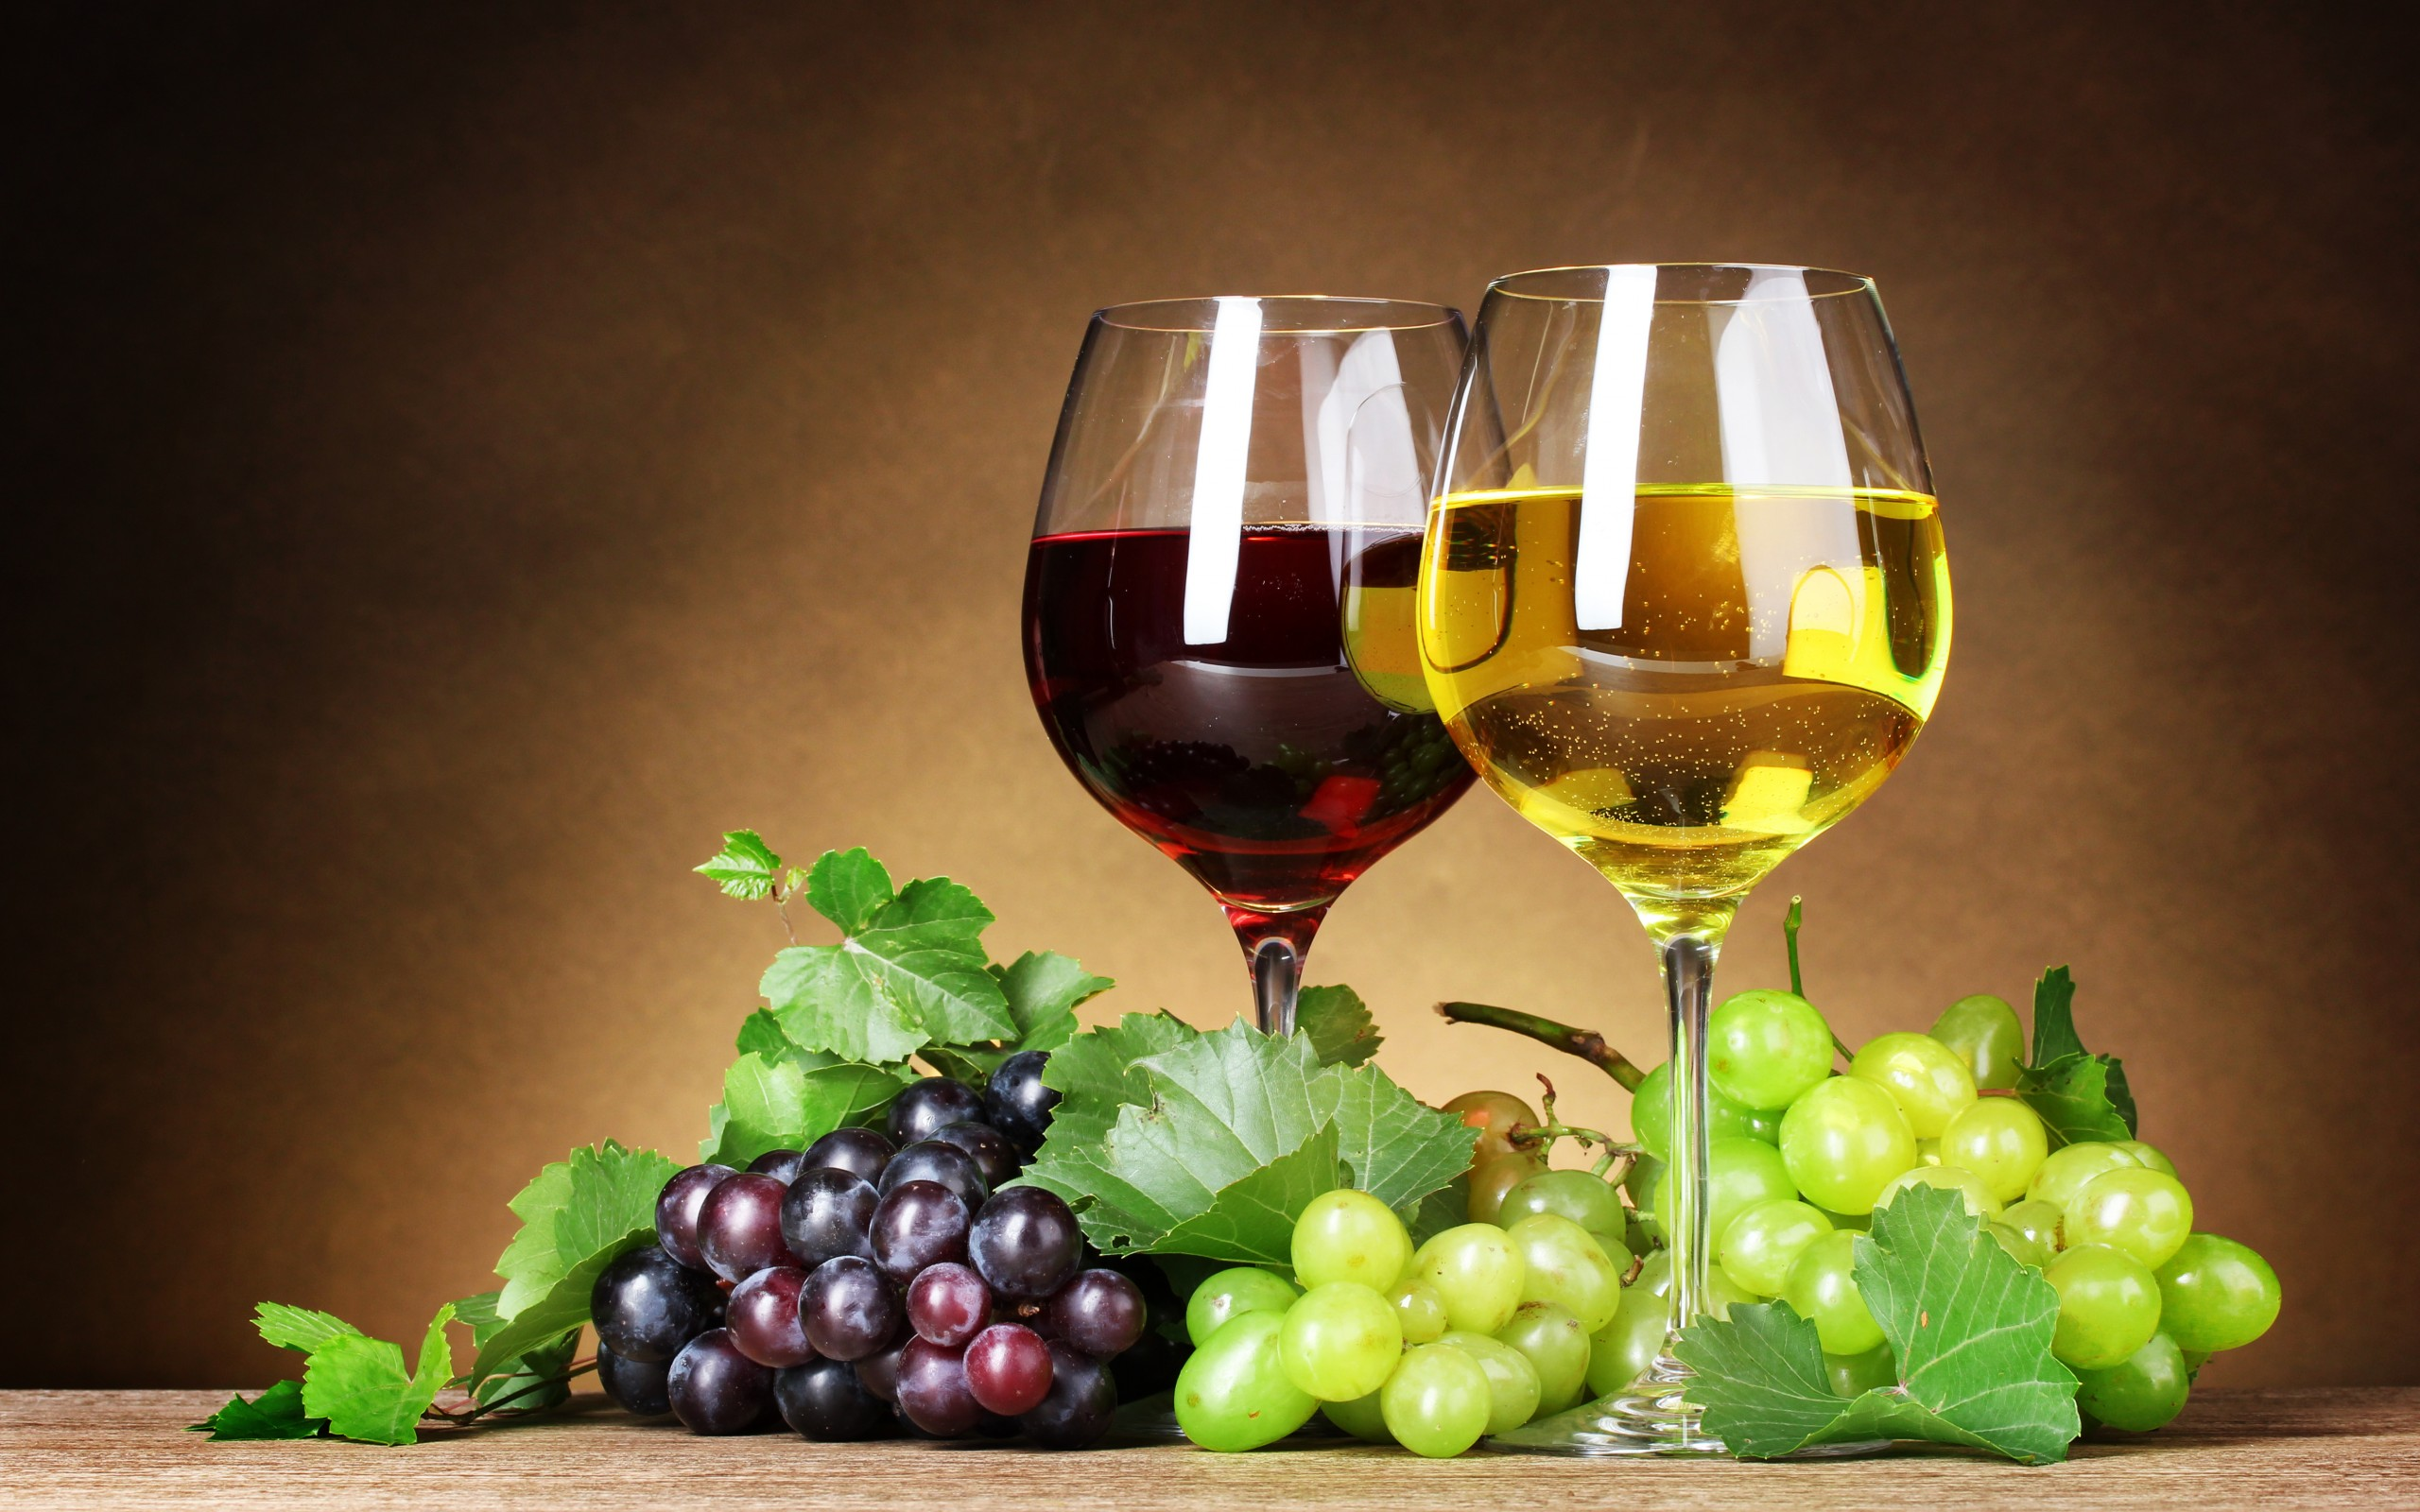 Fruit wines, the latest trend.